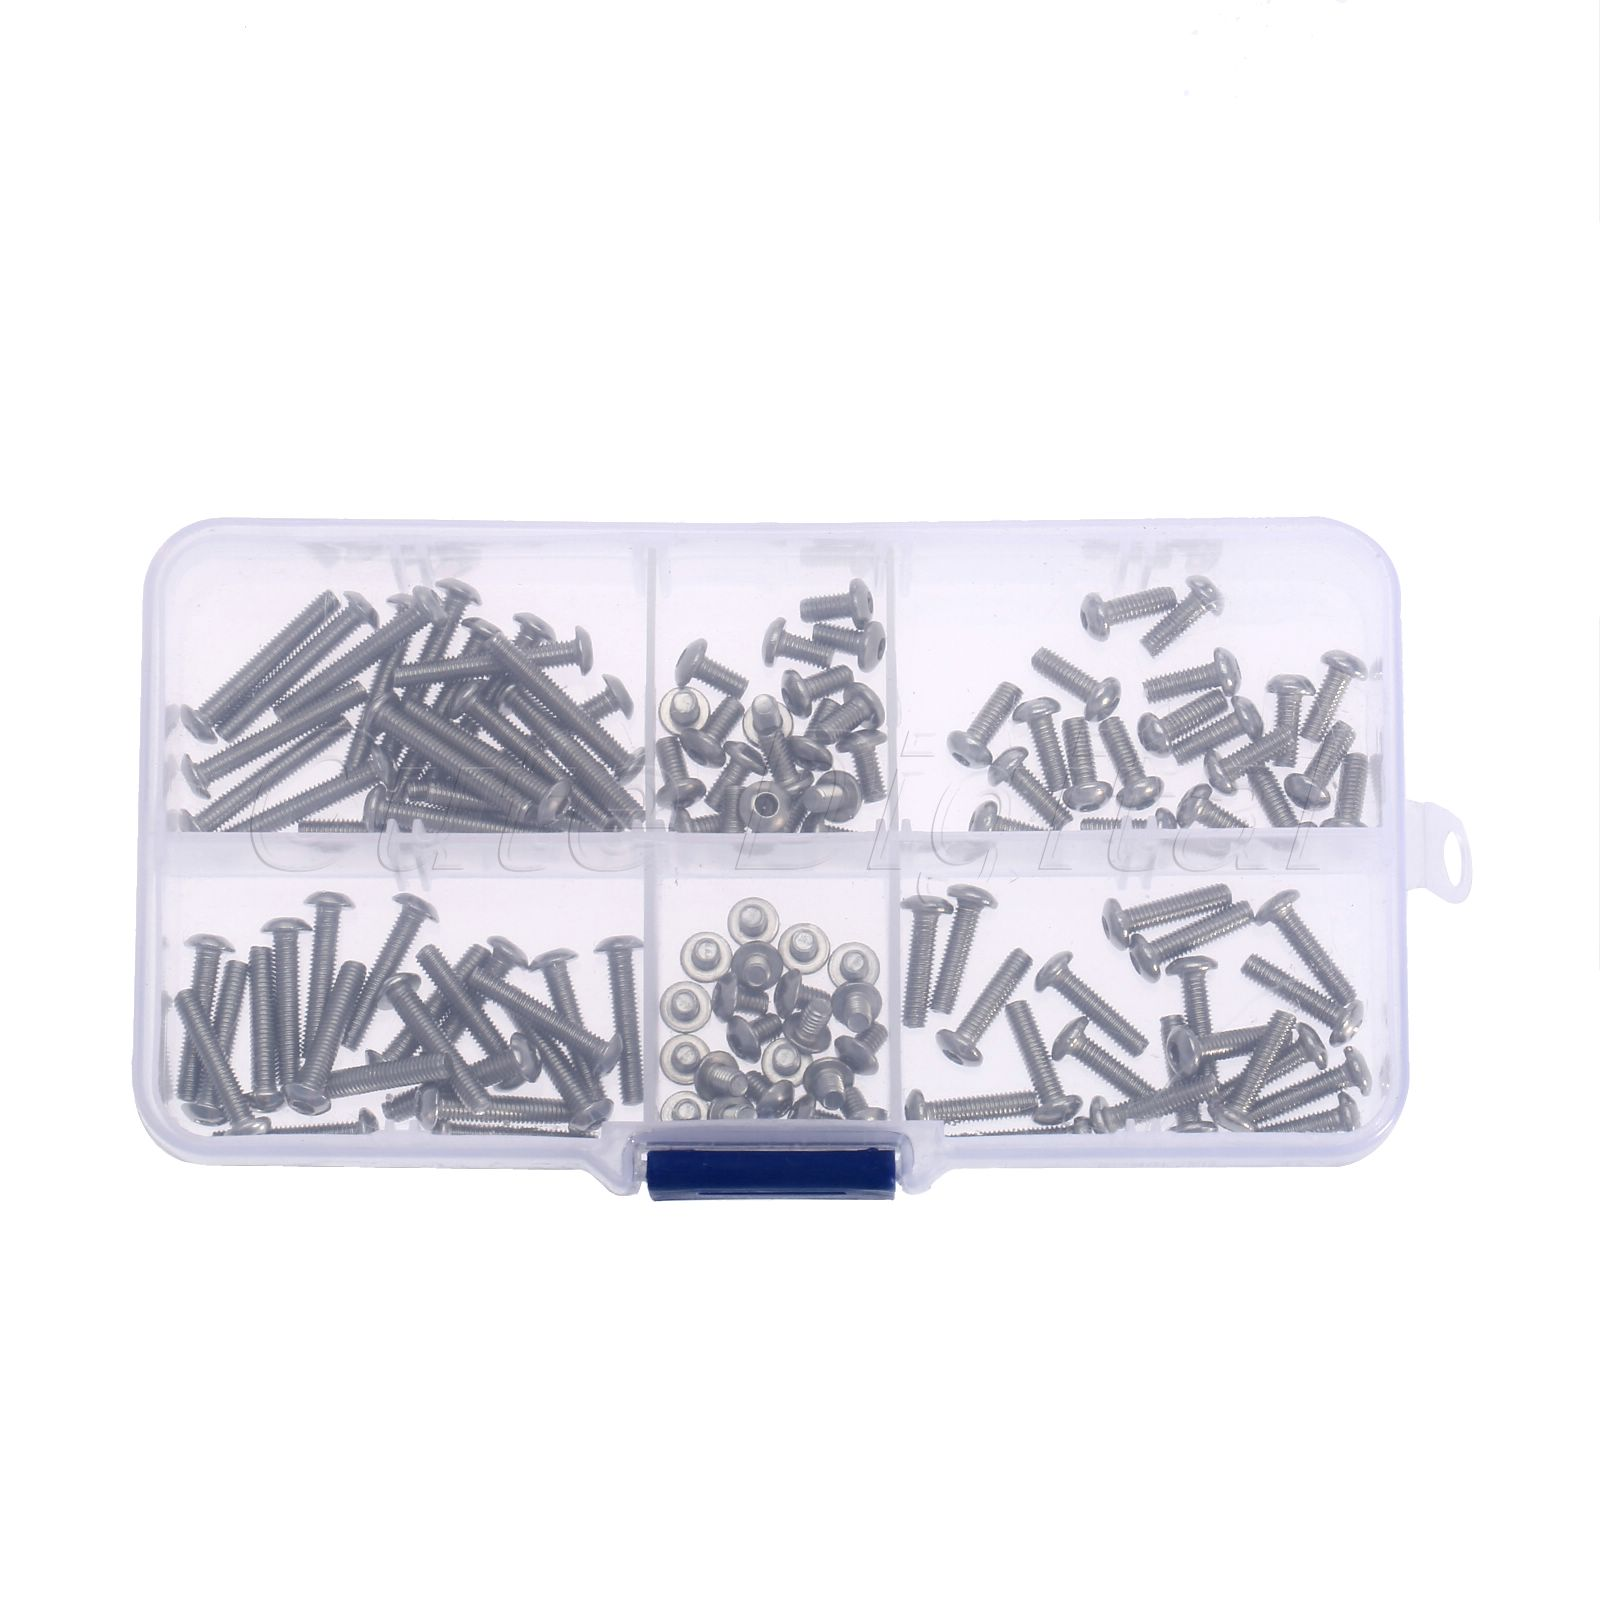 120Ps/Set 4/6/8/12/16/20mm M3 Stainless Steel Screw Hex Allen Wrench Button Head Bolt Socket Cap  Fasteners Assort Kit W/box 50pcs iso7380 m3 5 6 8 10 12 14 16 18 20 25 3mm stainless steel hexagon socket button head screw